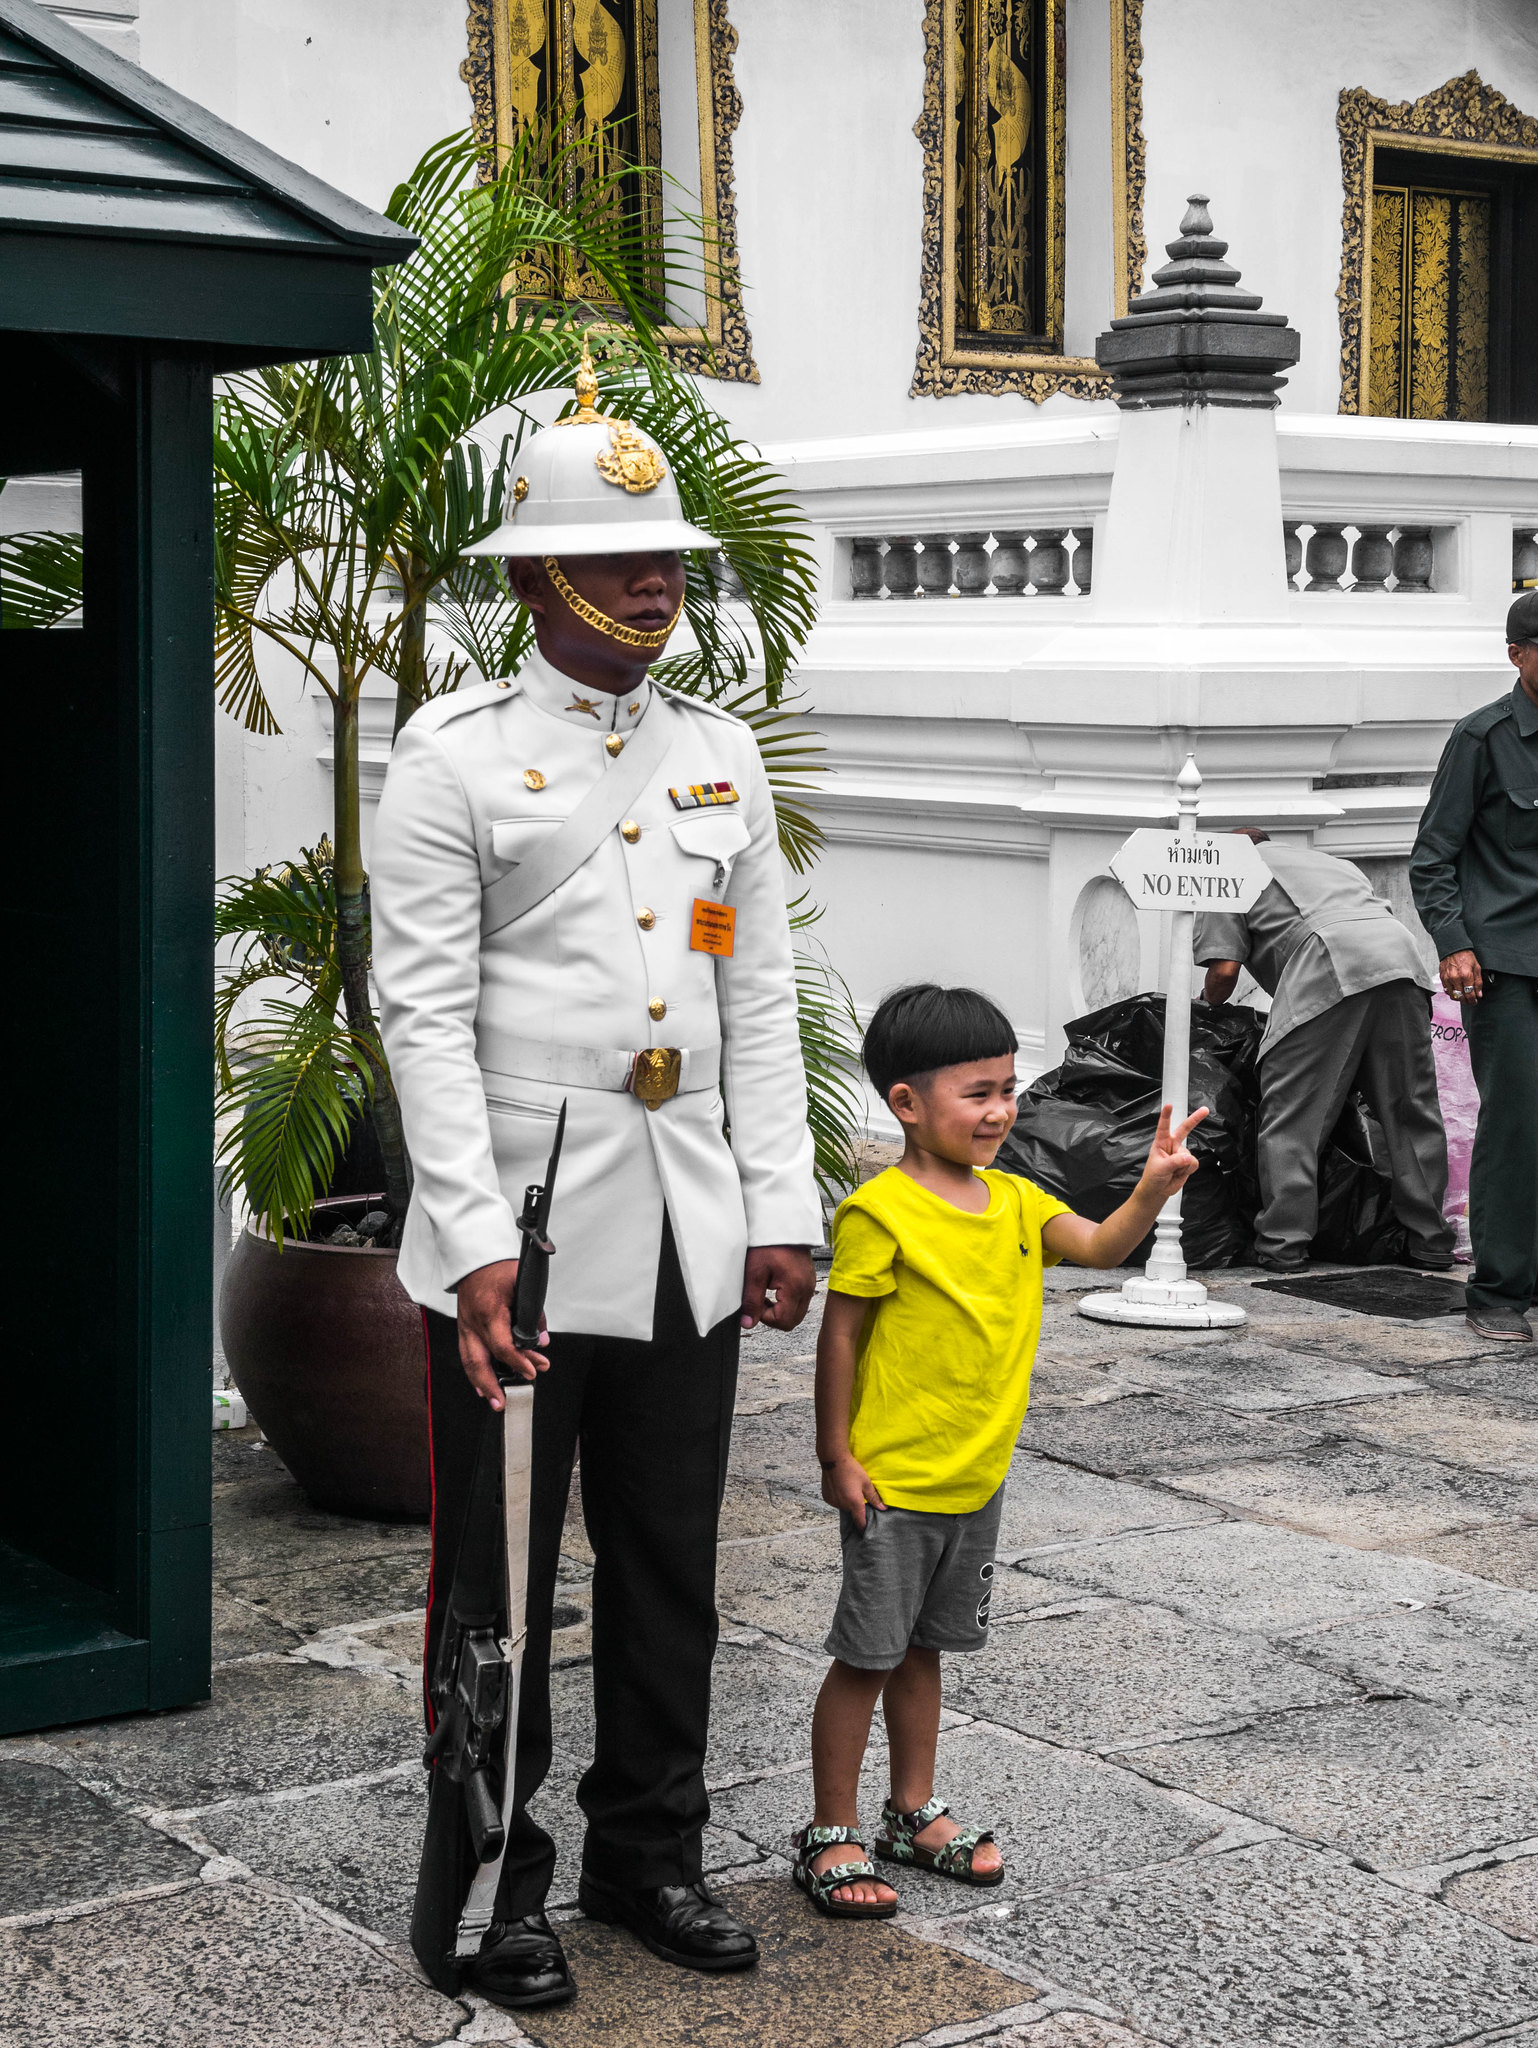 Guard at Grand Palace with a boy